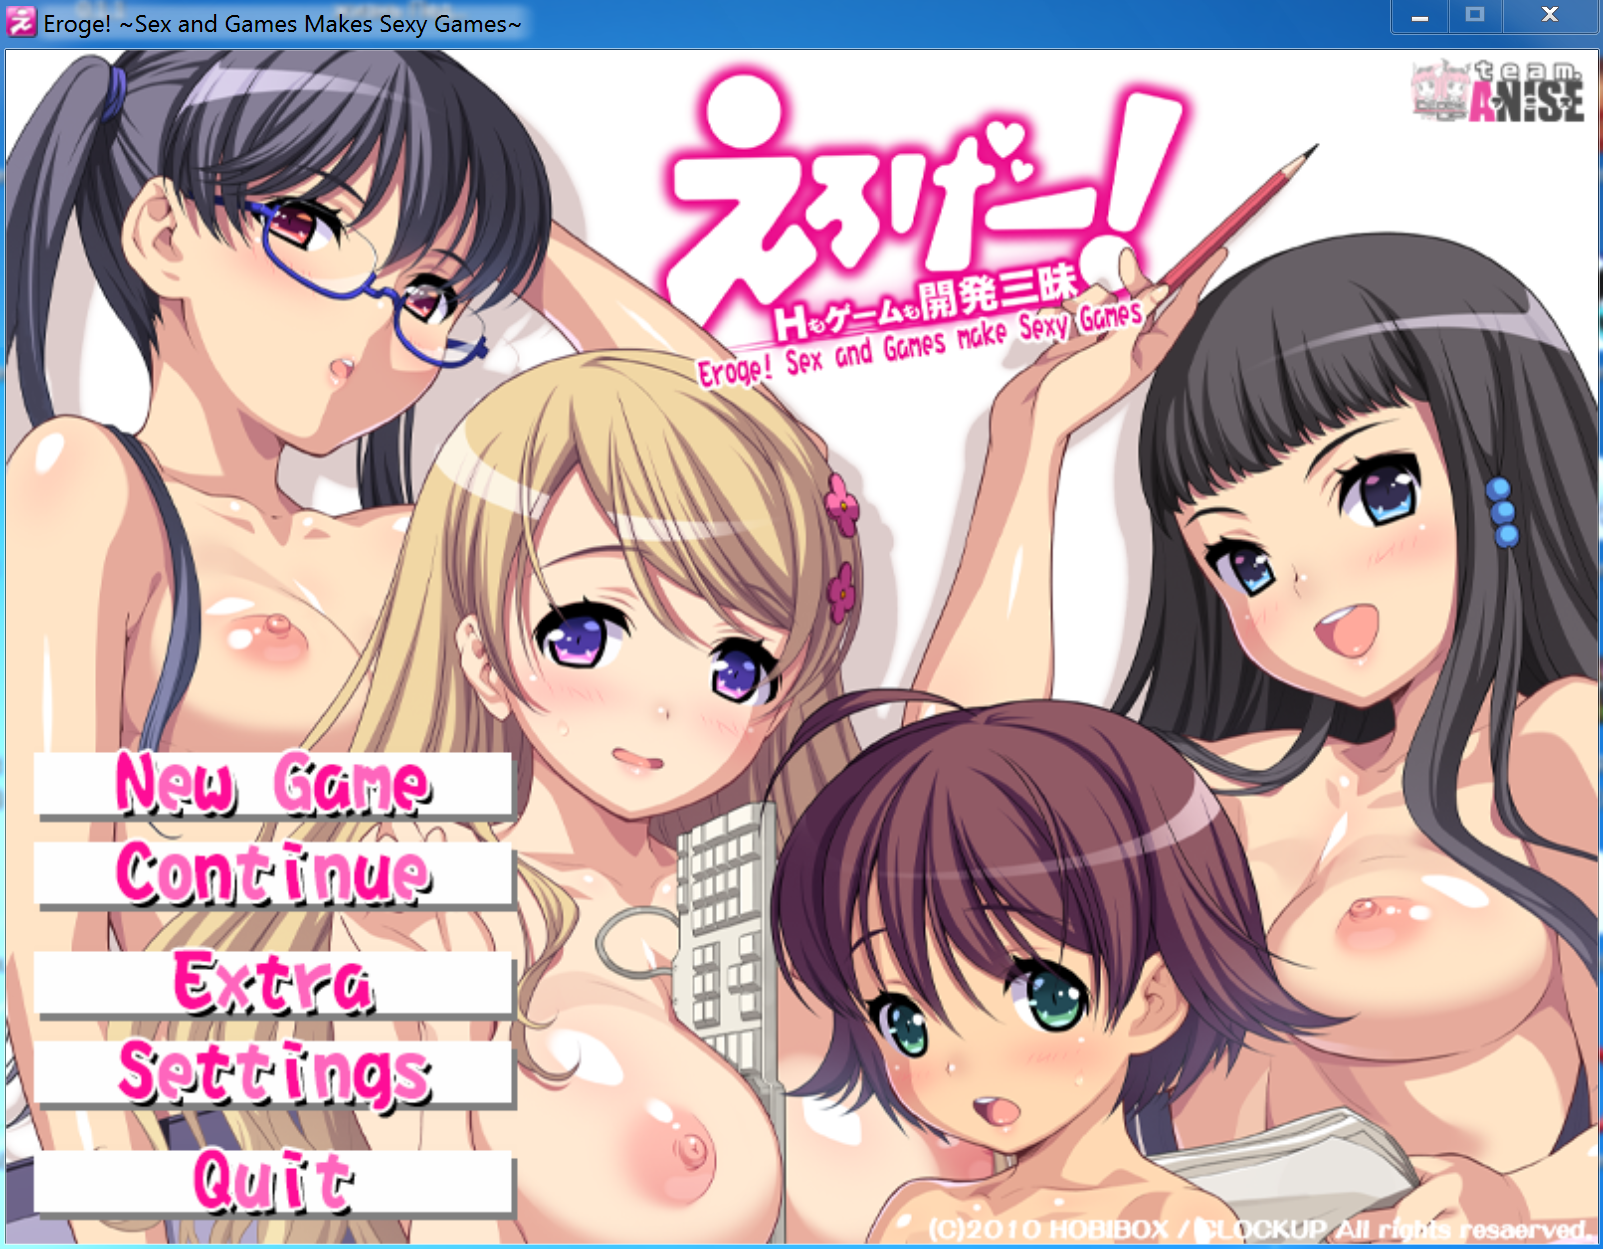 Eroge! ~sex and games make sexy games